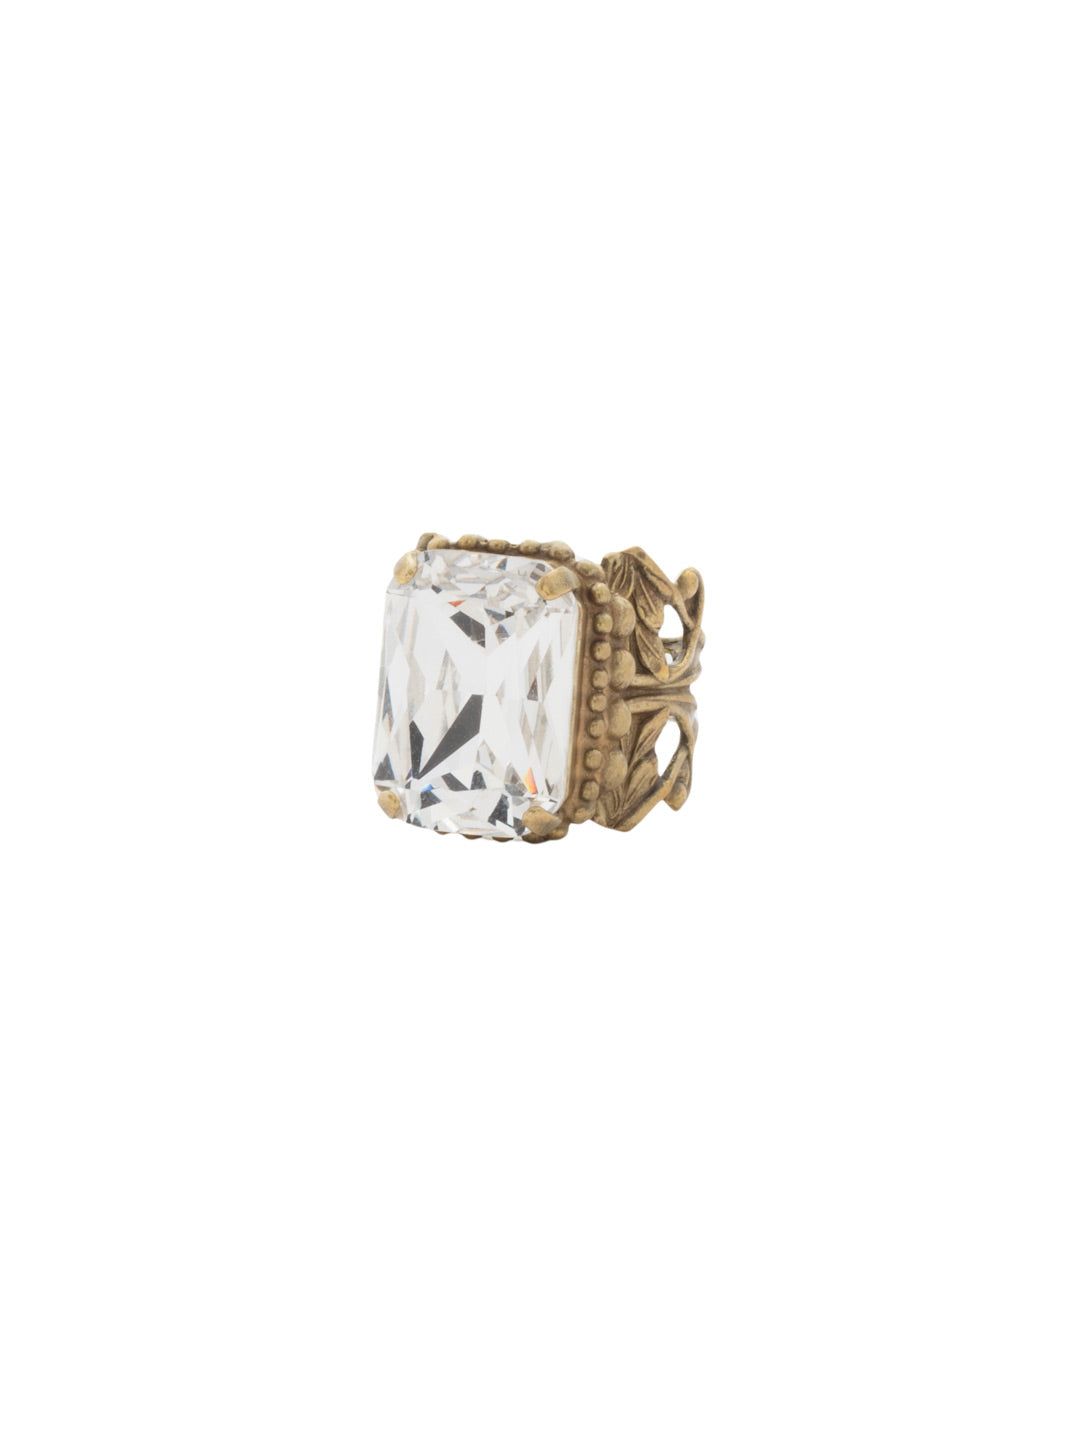 Emerald Cut Band Ring - RDG32AGCRY